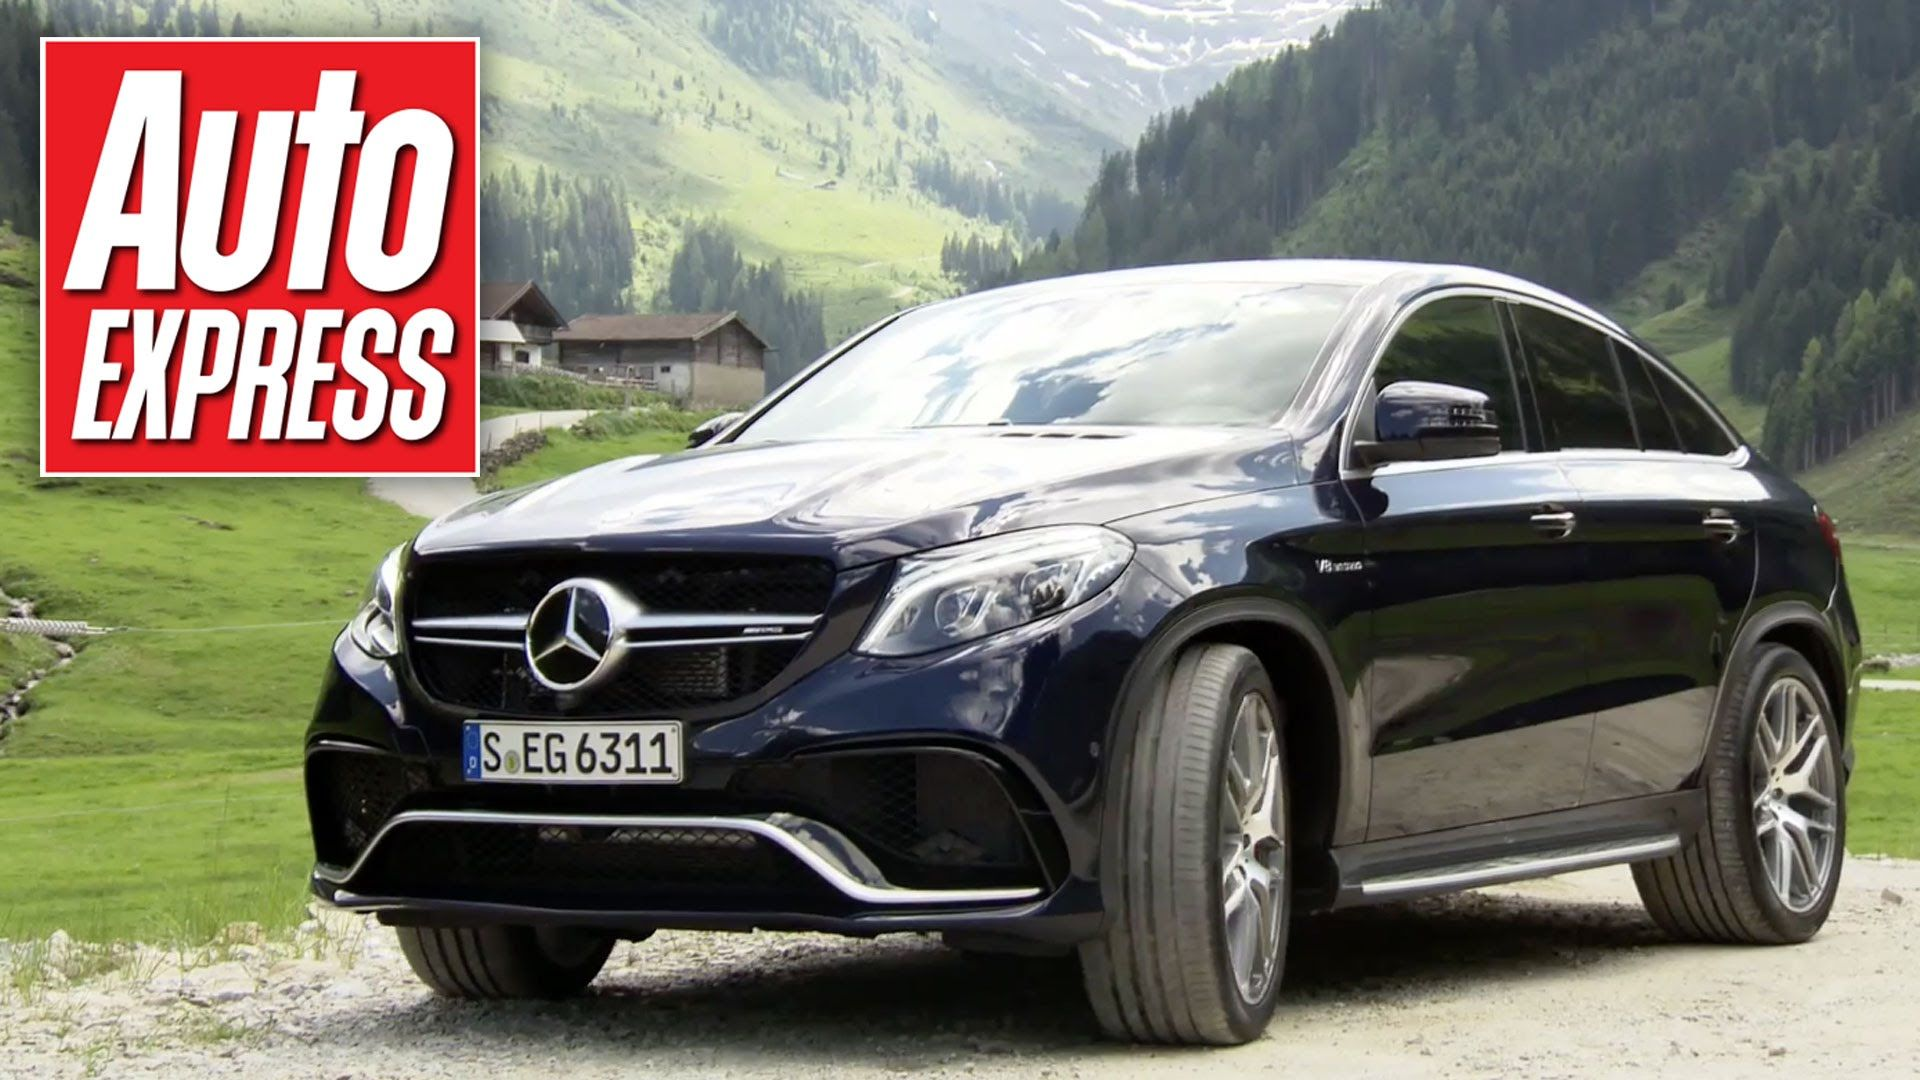 2015 mercedes benz gle coup review can it cars and trucks rh pinterest de mercedes gle coupe rent a car mercedes gle coupe a venda